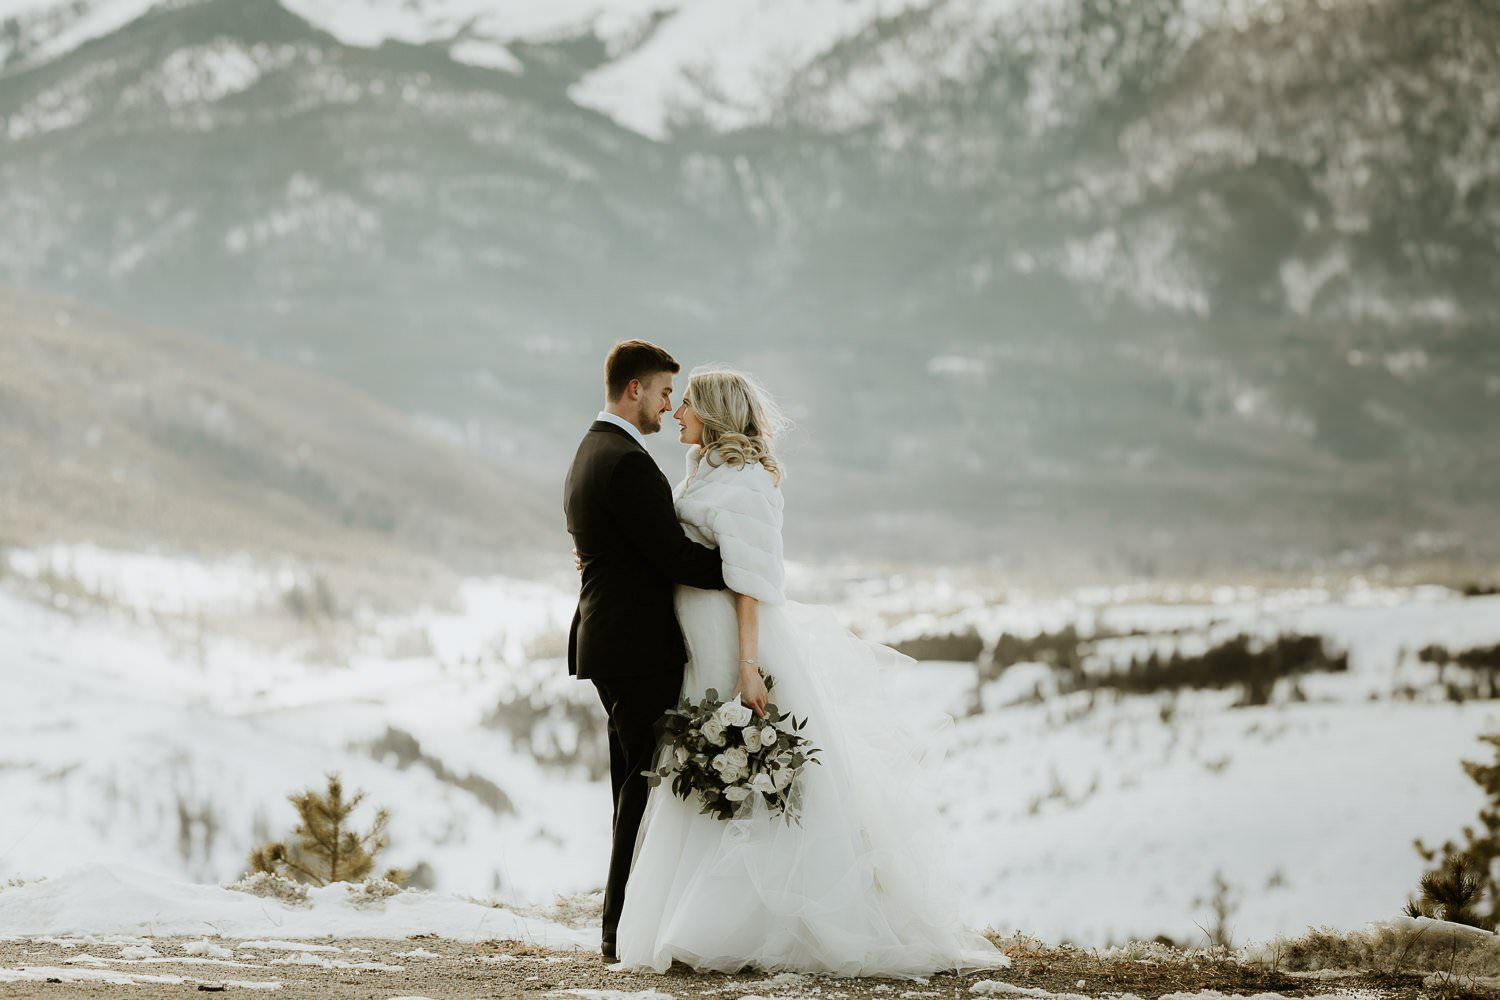 INTIMATE WINTER MOUNTAIN ELOPEMENT IN THE ROCKIES| LOVELAND PASSELOPEMENT | CONTINENTAL DIVIDE ELOPEMENT|COLORADO MOUNTAINELOPEMENT PHOTOGRAPHY | ROCKY MOUNTAIN ELOPEMENT |BRECKENRIDGE COLORADO ELOPEMENT|SAPPHIRE POINT OUTLOOK ELOPEMENT|CASEY + LARRY